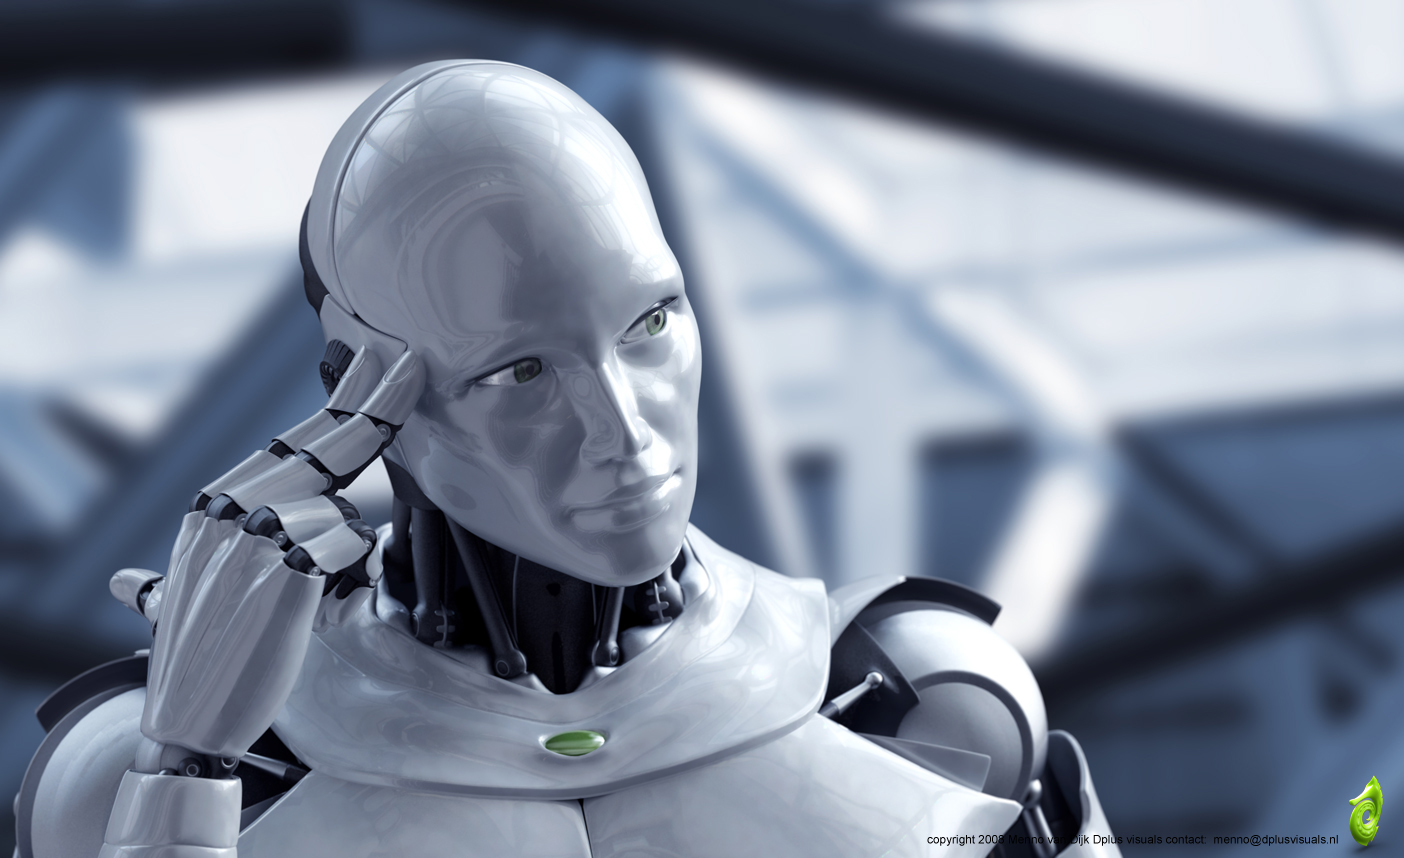 Images of Future Robot Movies - #rock-cafe